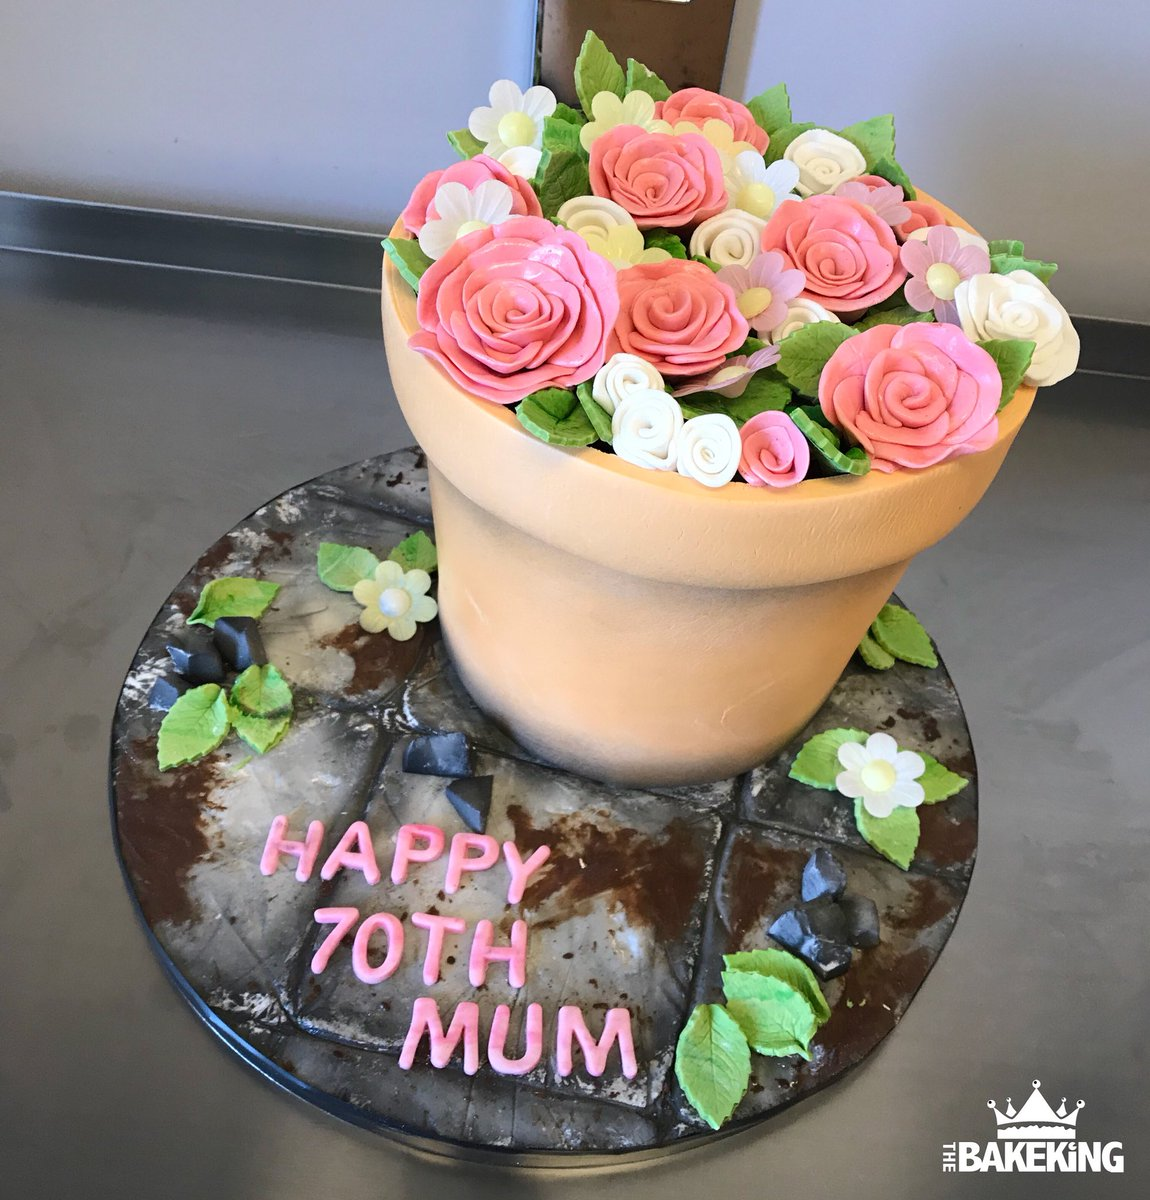 Flowerpot CAKE For A 70th Birthday Very Happy To Her Vanilla Cake With Chocolate Ganache Cakes Thebakeking Bakeking Extremecakemakers